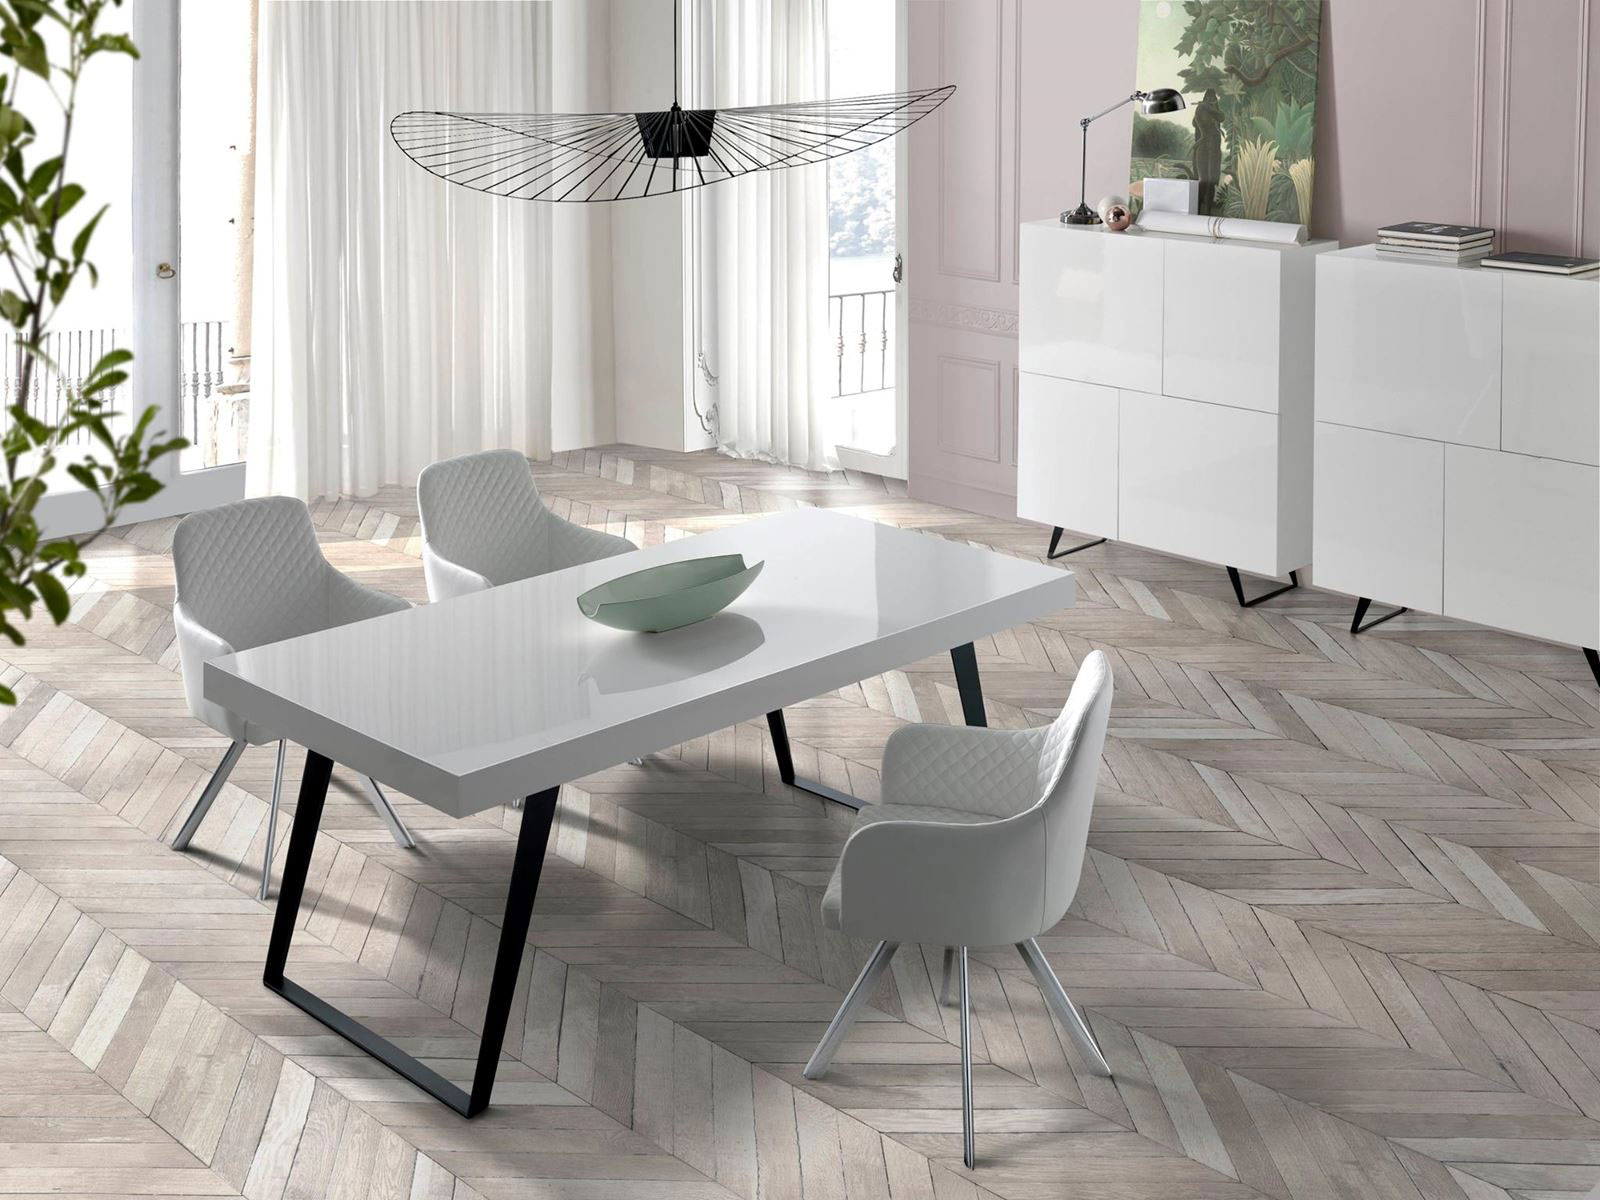 table, modern table, white table, trapezi, chairs, white chairs, karekles, console, konsola, bookshelf, dining table, kitchen table, andreotti, andreotti furniture, epipla, furniture, limassol, cyprus